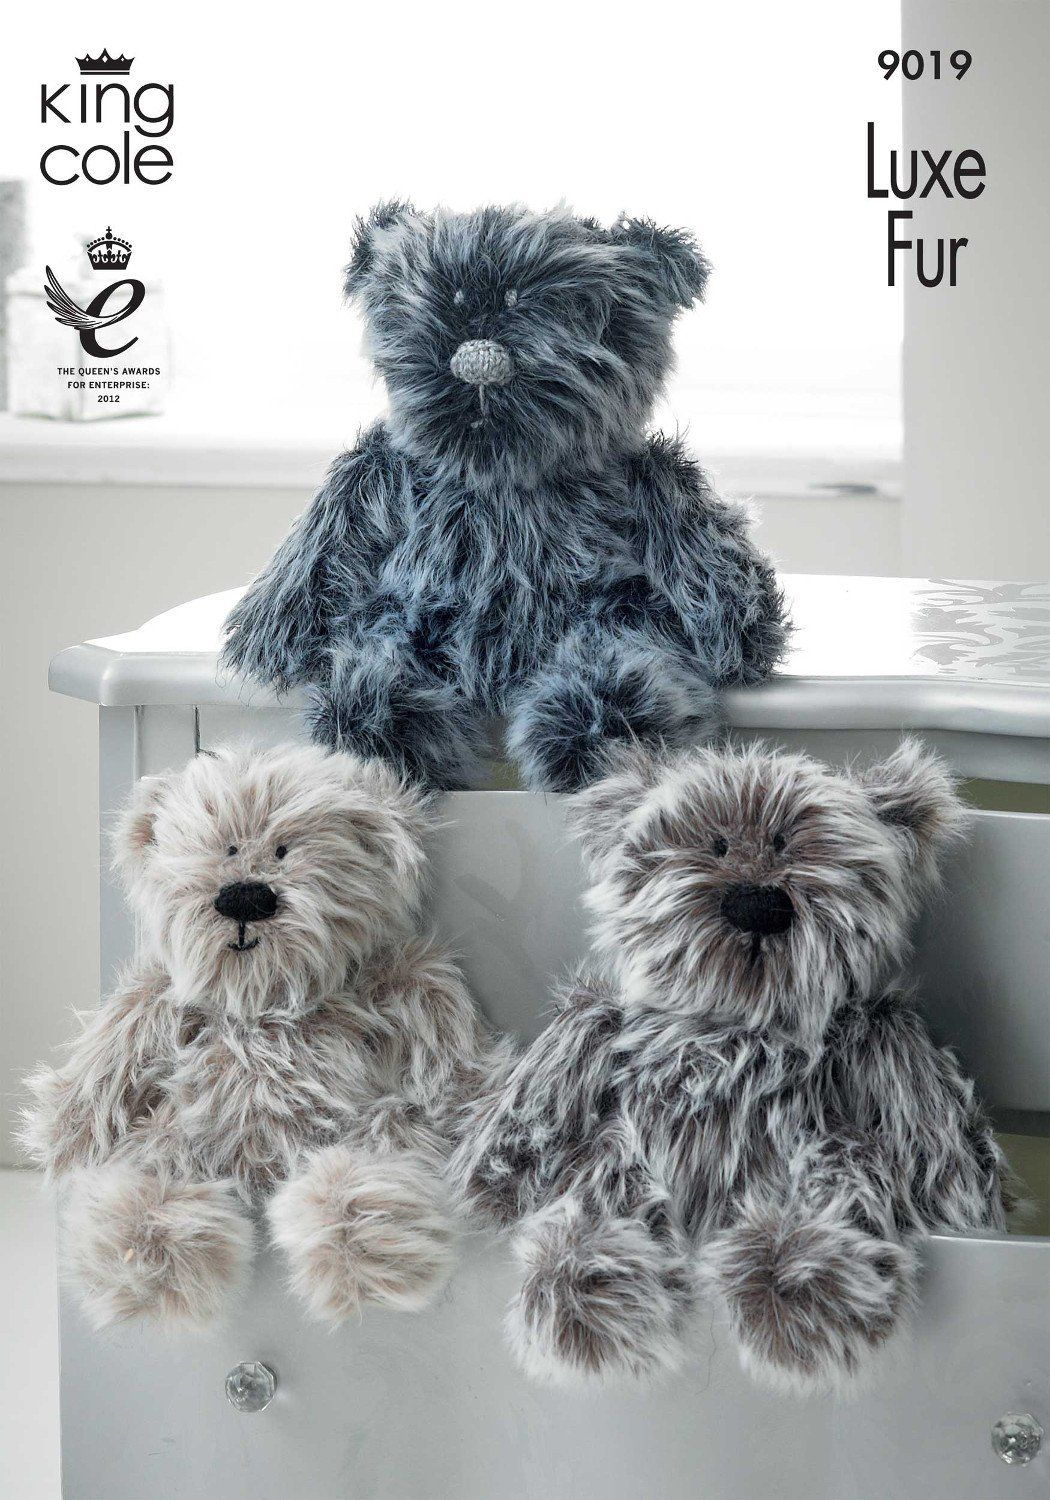 King cole luxe fur knitting pattern 9019 three teddy bears amazon king cole luxe fur knitting pattern 9019 three teddy bears amazon bankloansurffo Gallery